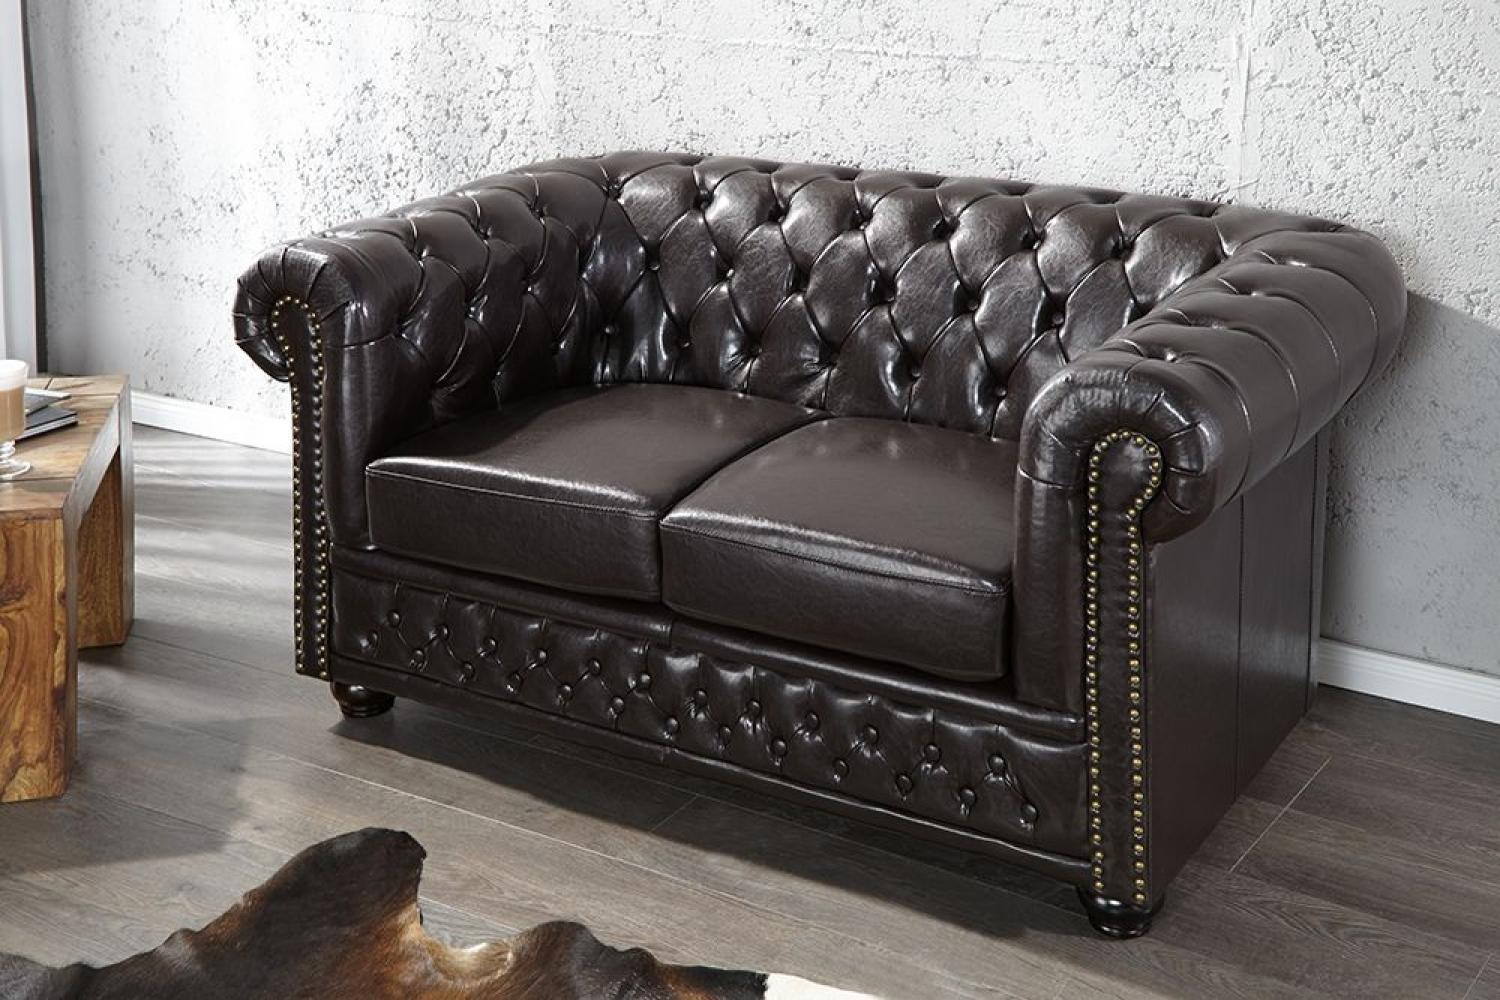 Canap chesterfield convertible 2 places - Canape chesterfield convertible ...